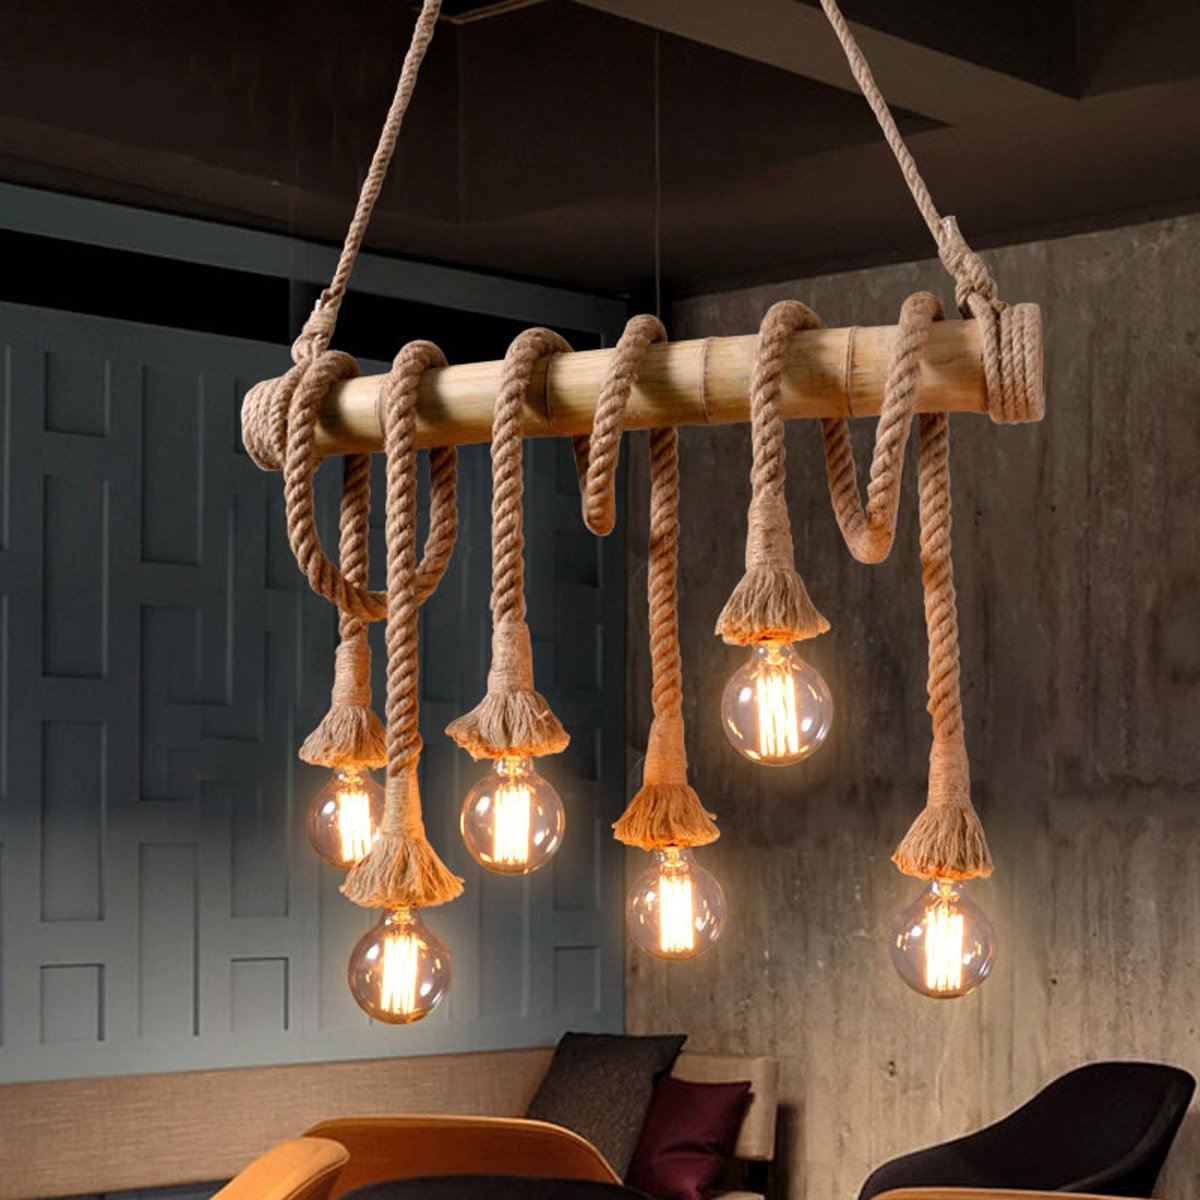 rope pendant vintage light head is chandelier lights industrial image loading ceiling itm lamp